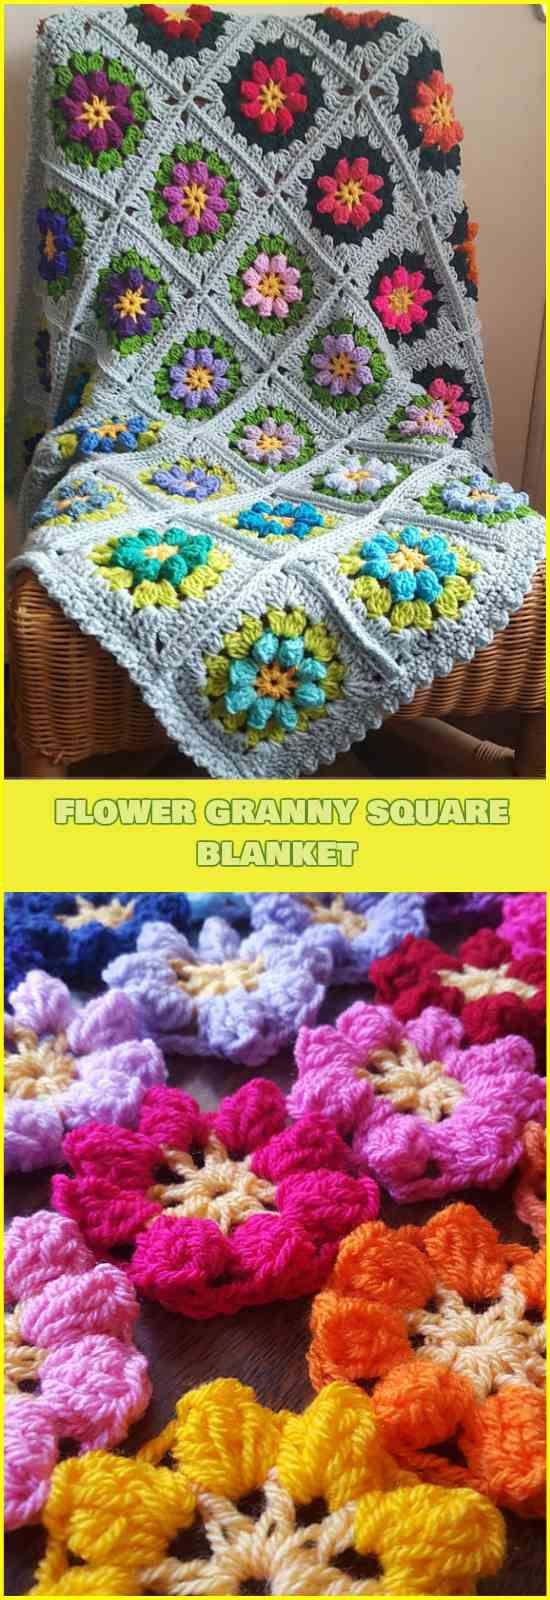 Primavera Flowers Granny Square Blanket [Free Crochet Pattern and Tutorial]